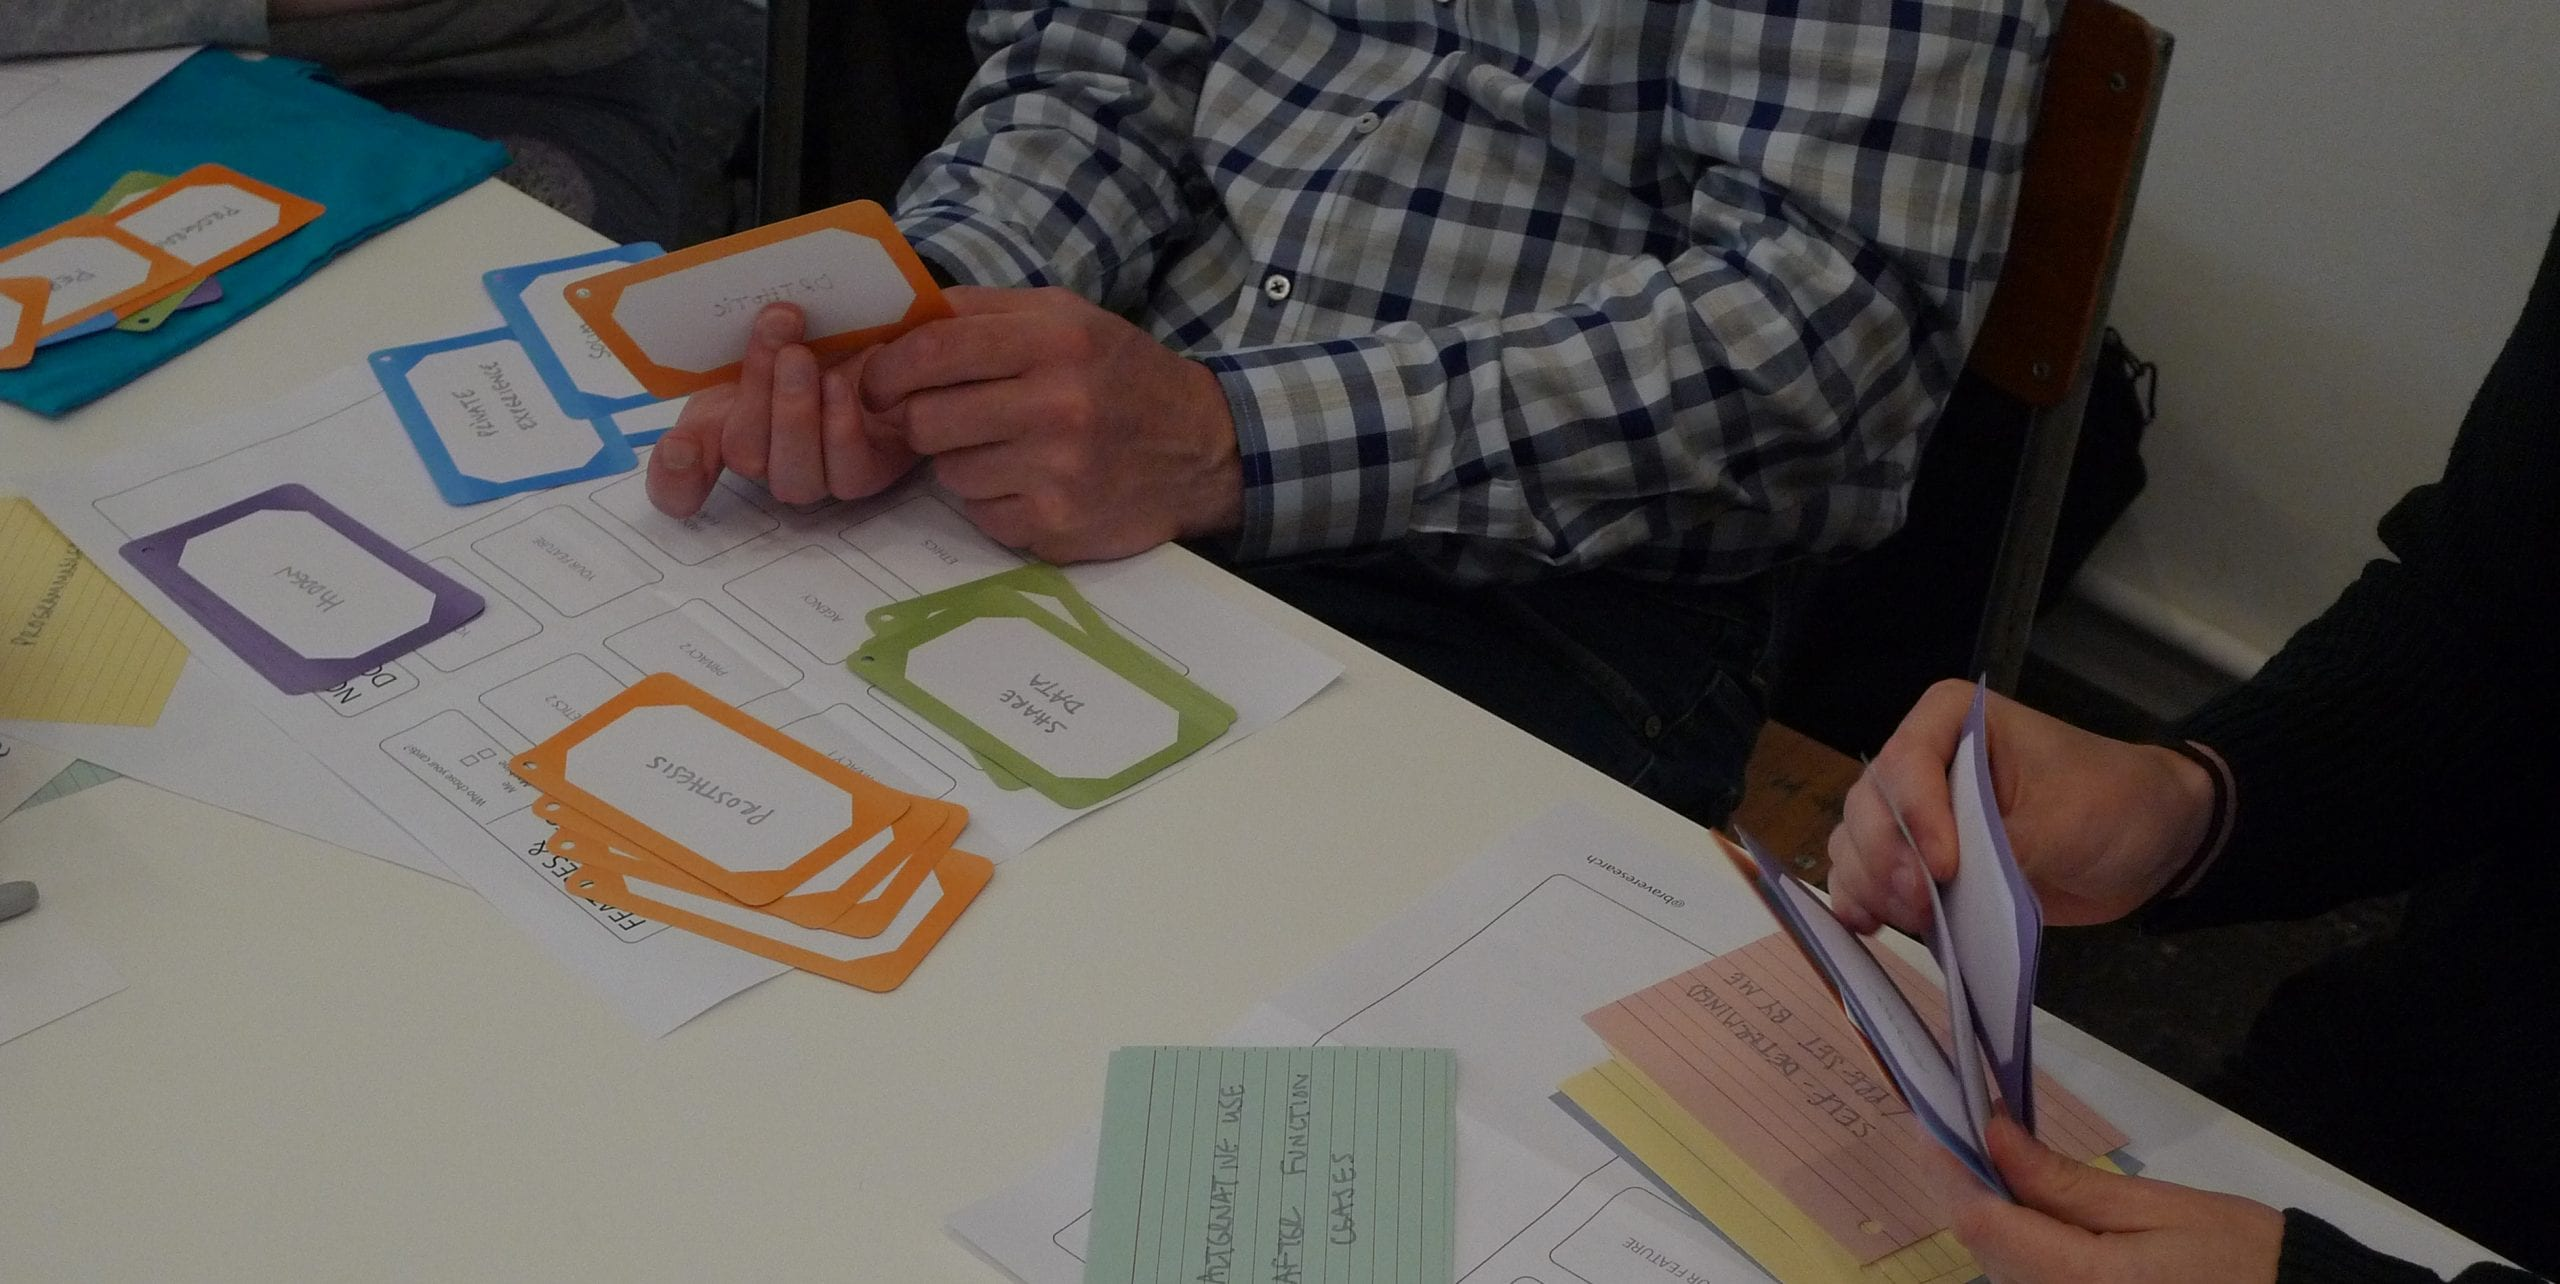 Take Back Control Workshop: designing automated wellbeing technologies